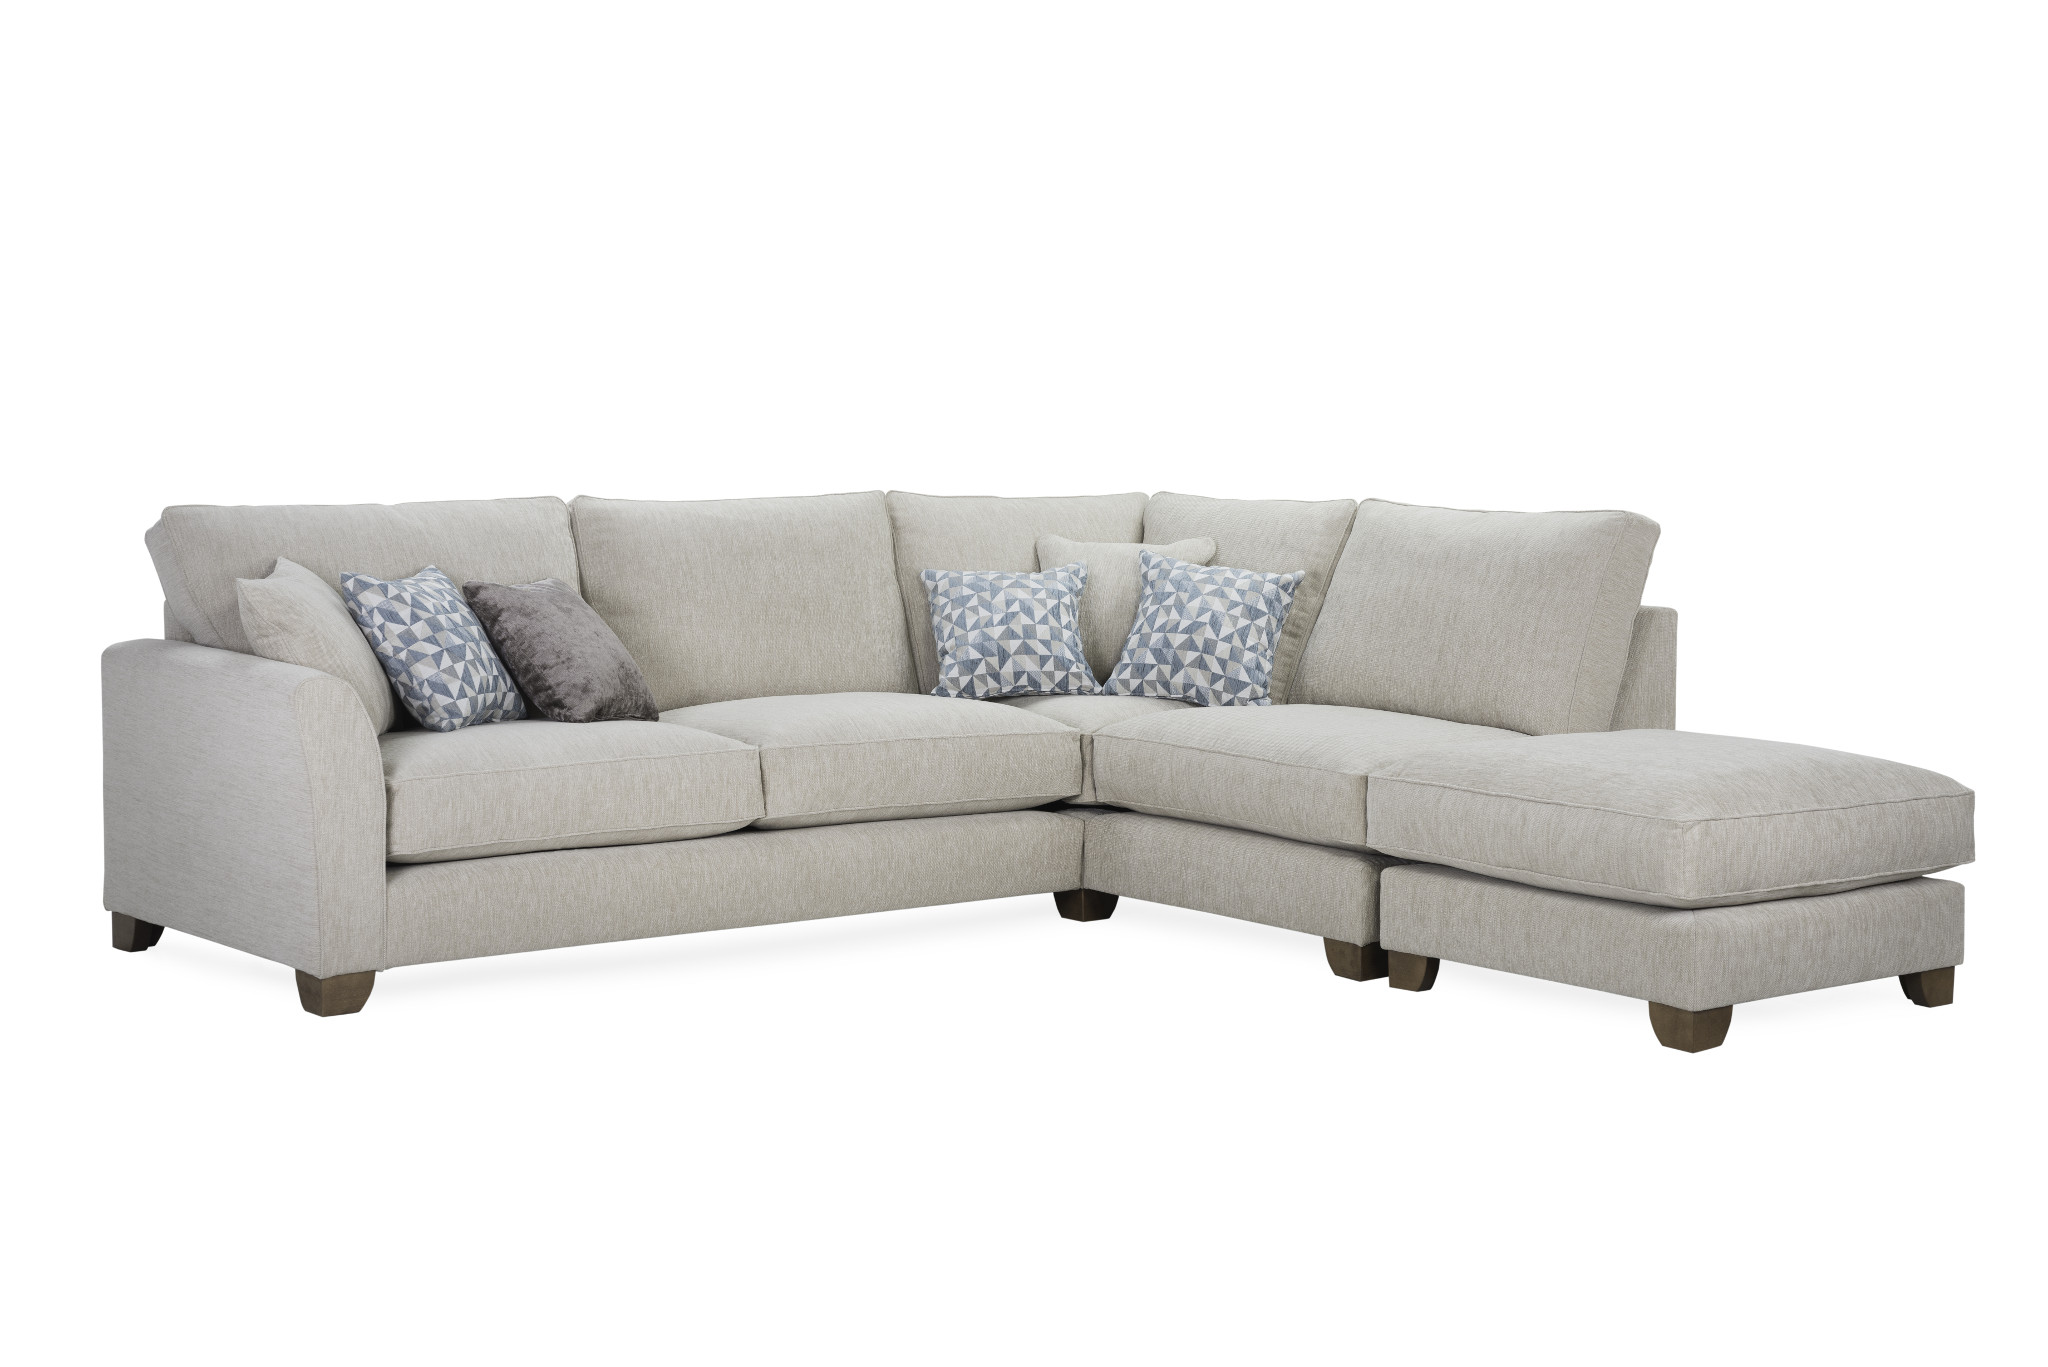 The Dorset   Modular sofa with wide variety of sizes  Shown Sofa: 285(W)184(D) 96 (H)   Prices from £1295